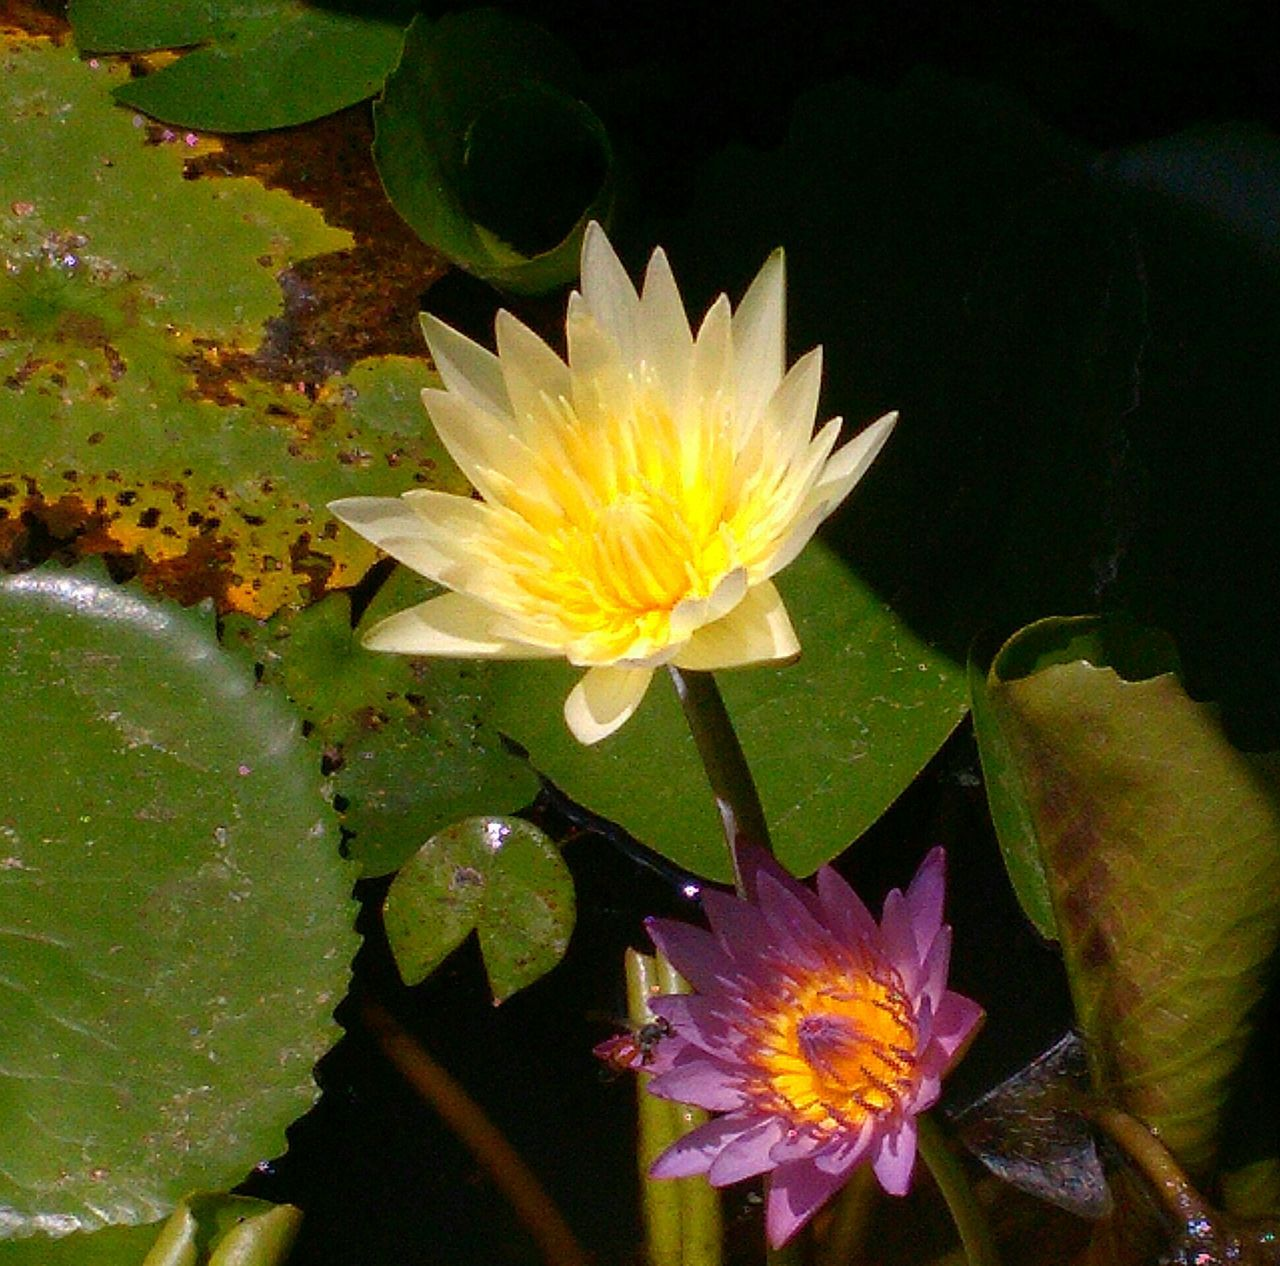 flower, petal, beauty in nature, leaf, freshness, growth, nature, fragility, flower head, water lily, plant, yellow, floating on water, lotus water lily, blooming, lily pad, no people, close-up, water, lotus, day, outdoors